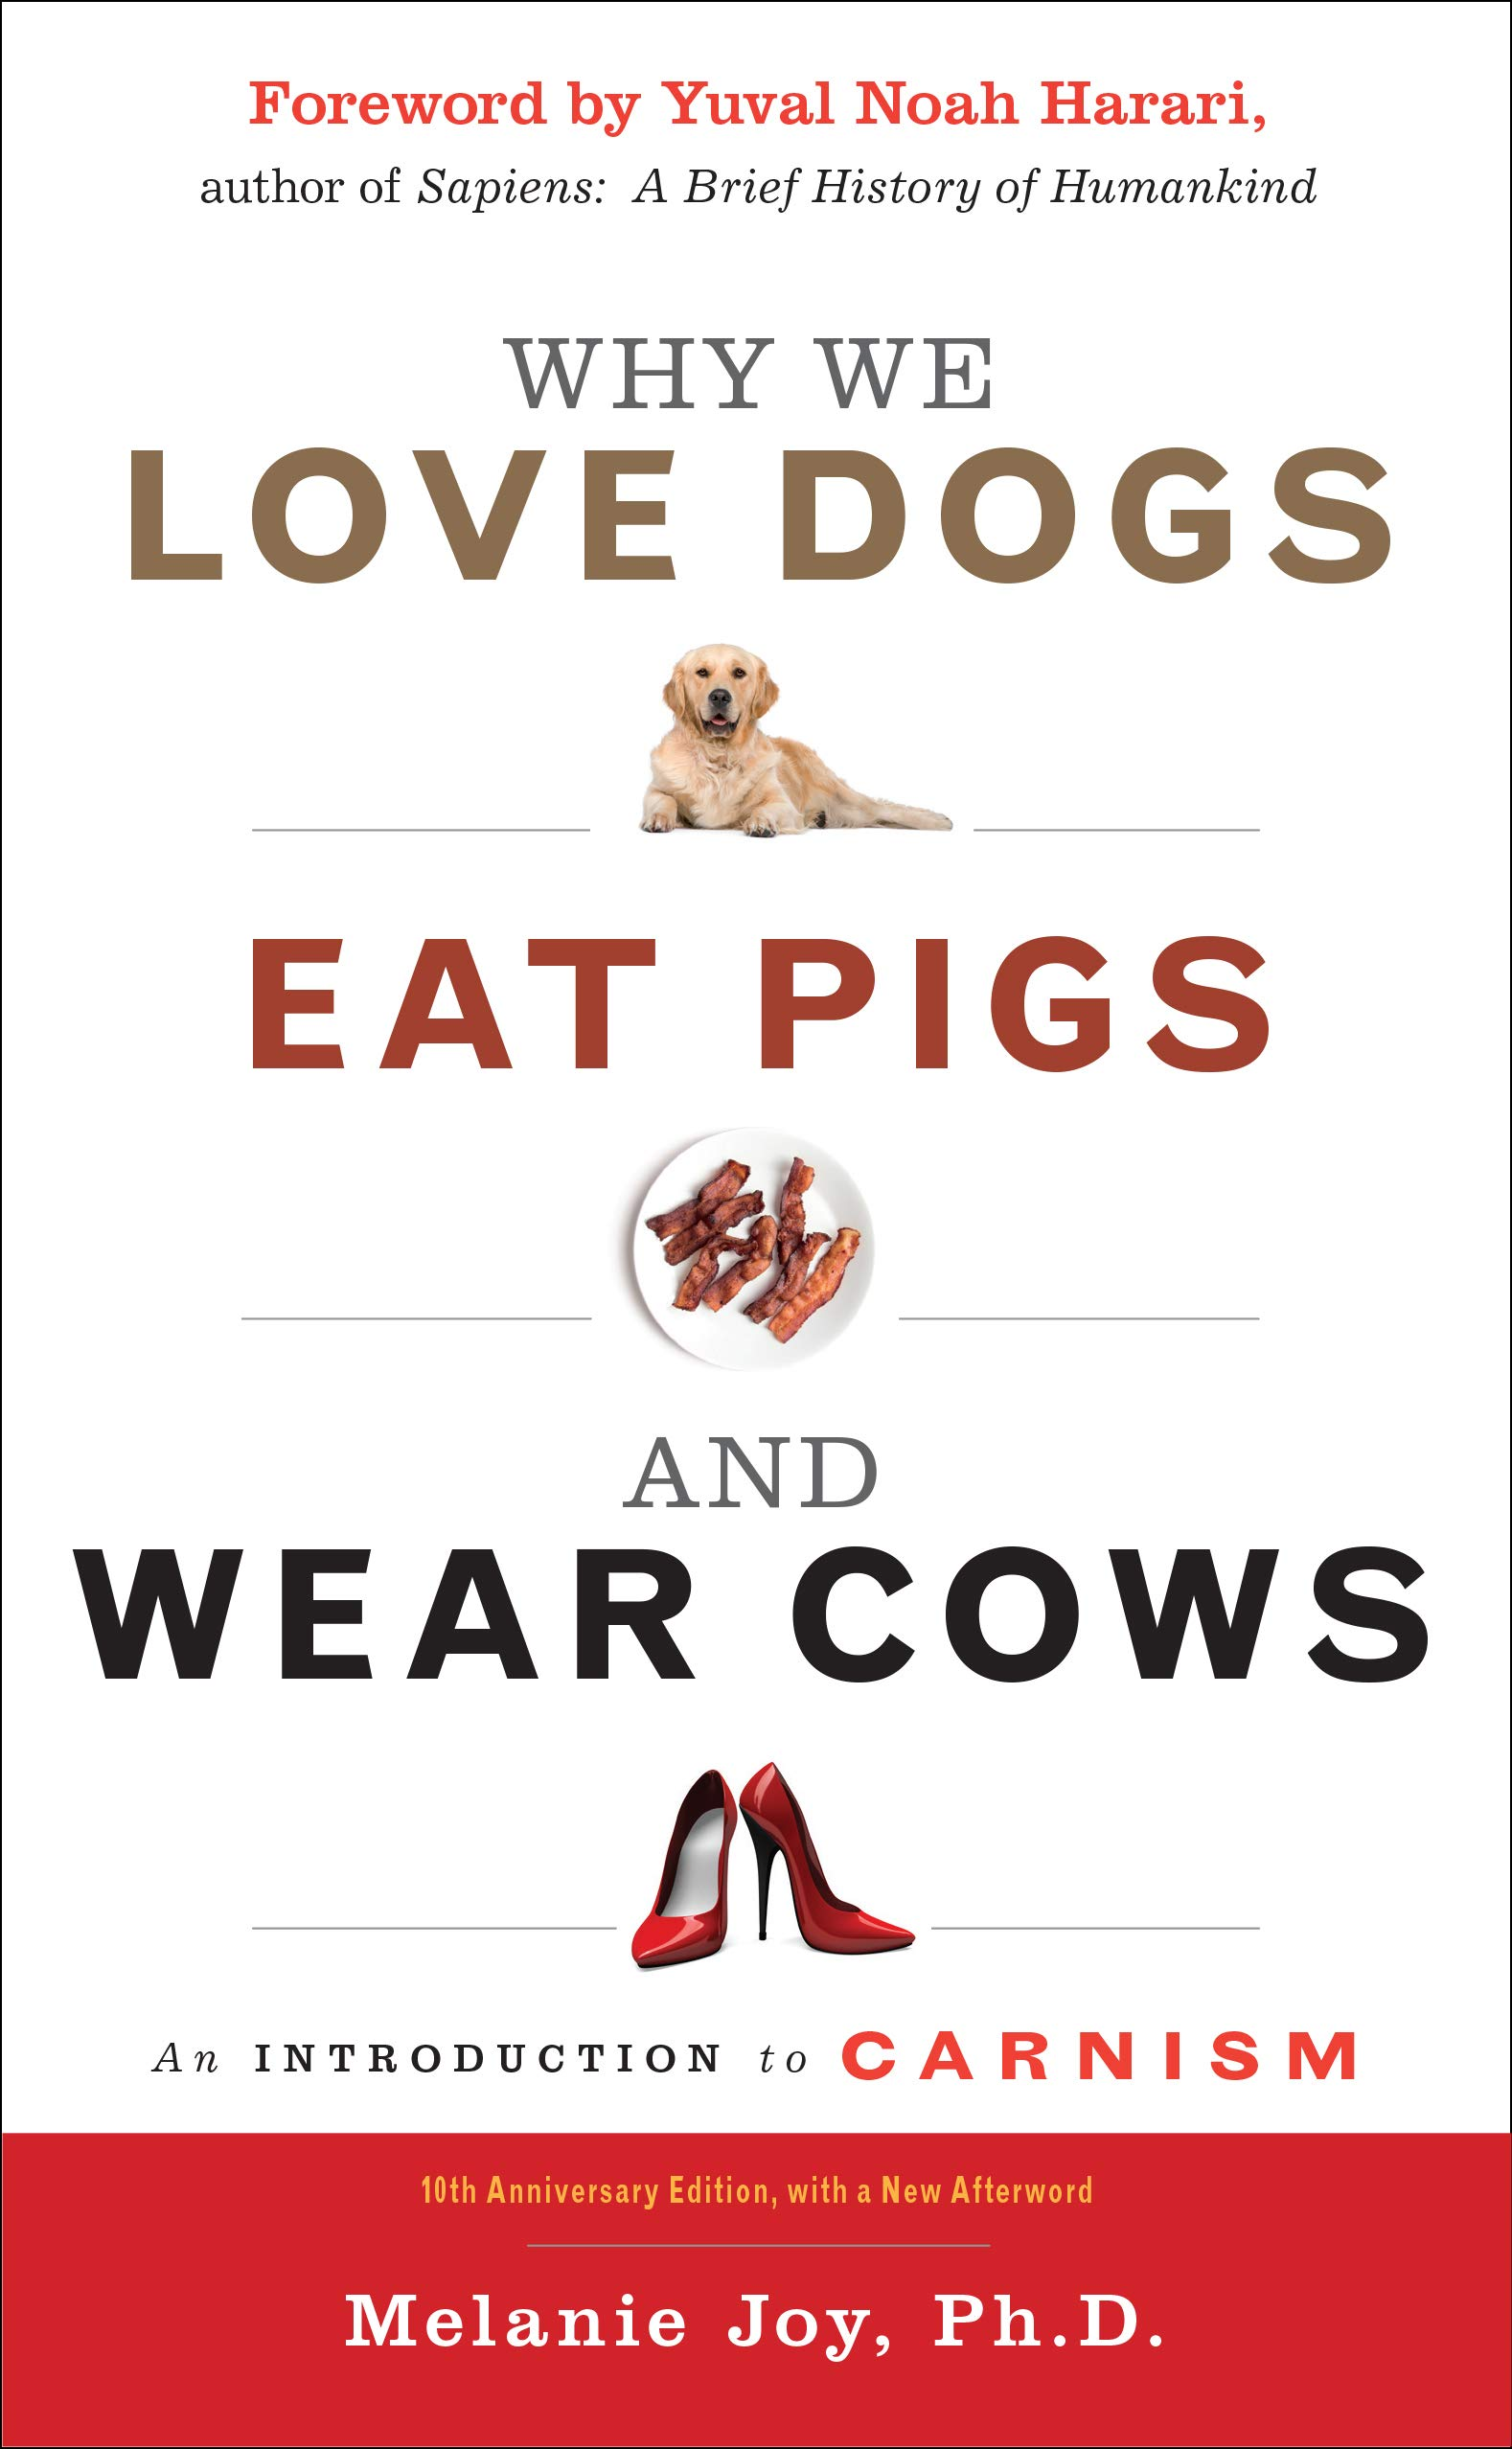 Why We Love Dogs, Eat Pigs and Wear Cows by Melanie Joy